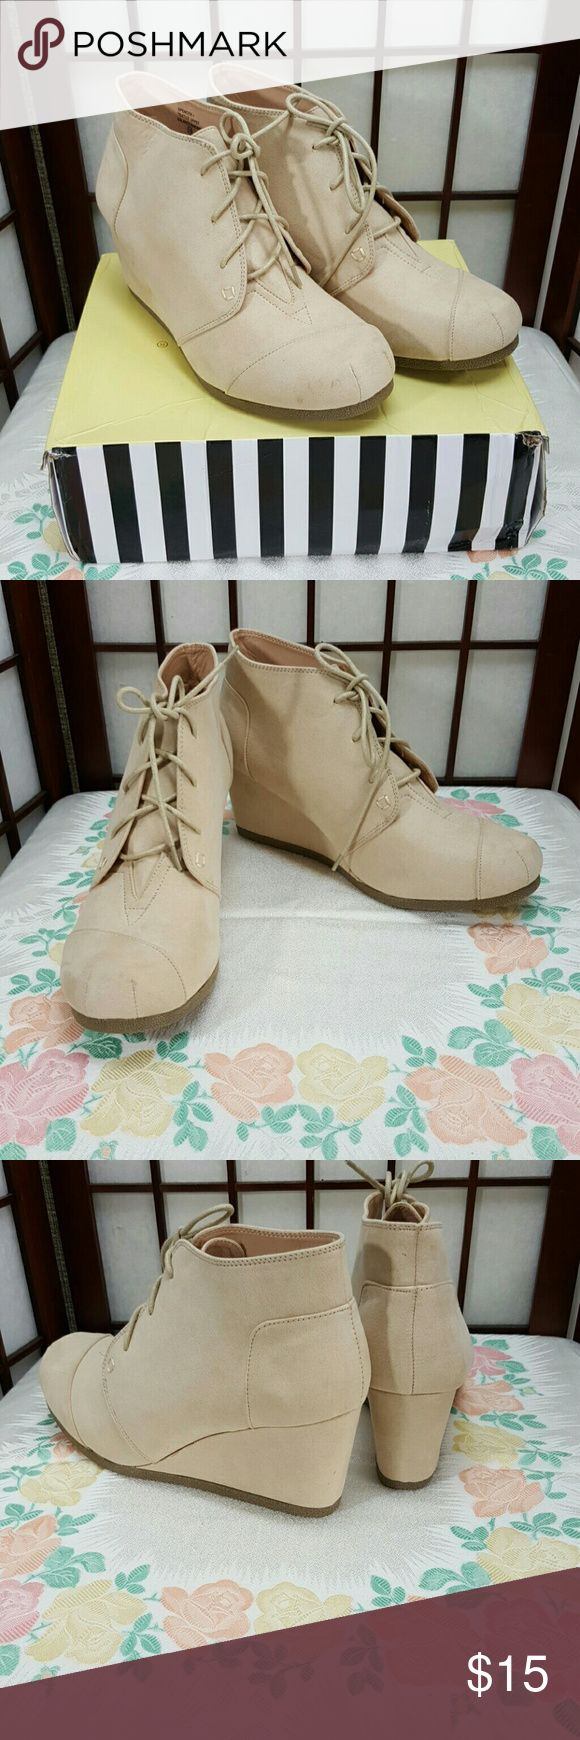 CHASE AND CHLOE Fall Wedges Nude Shoes Size 10 * New without tags , Chase and Chloe  * wedges shoes size 10 * color nude Chase and Chloe Shoes Wedges